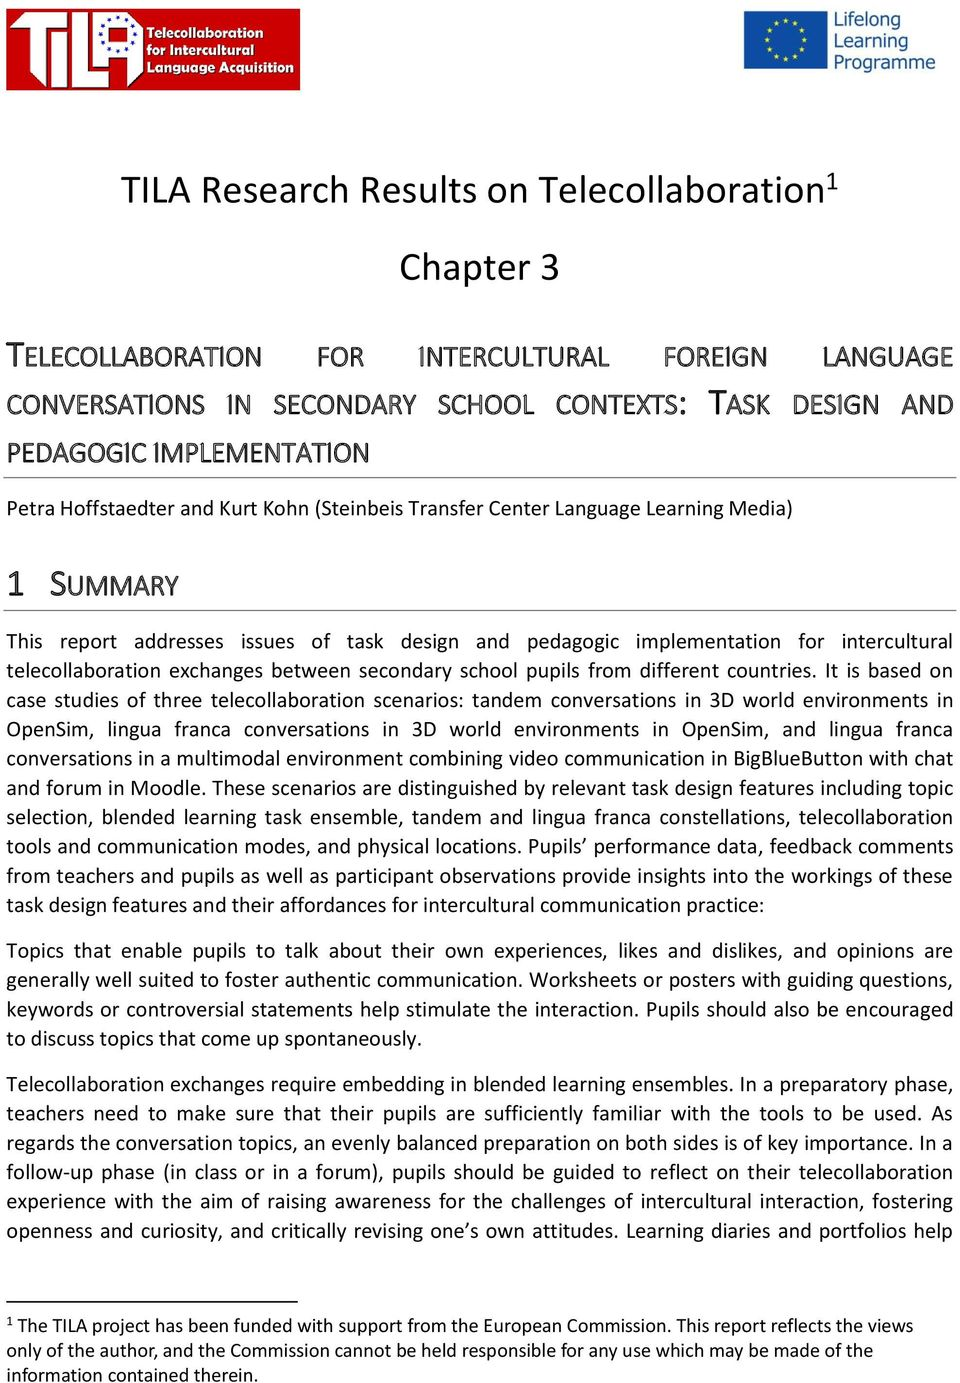 TILA Research Results on Telecollaboration 1 Chapter 3 - PDF